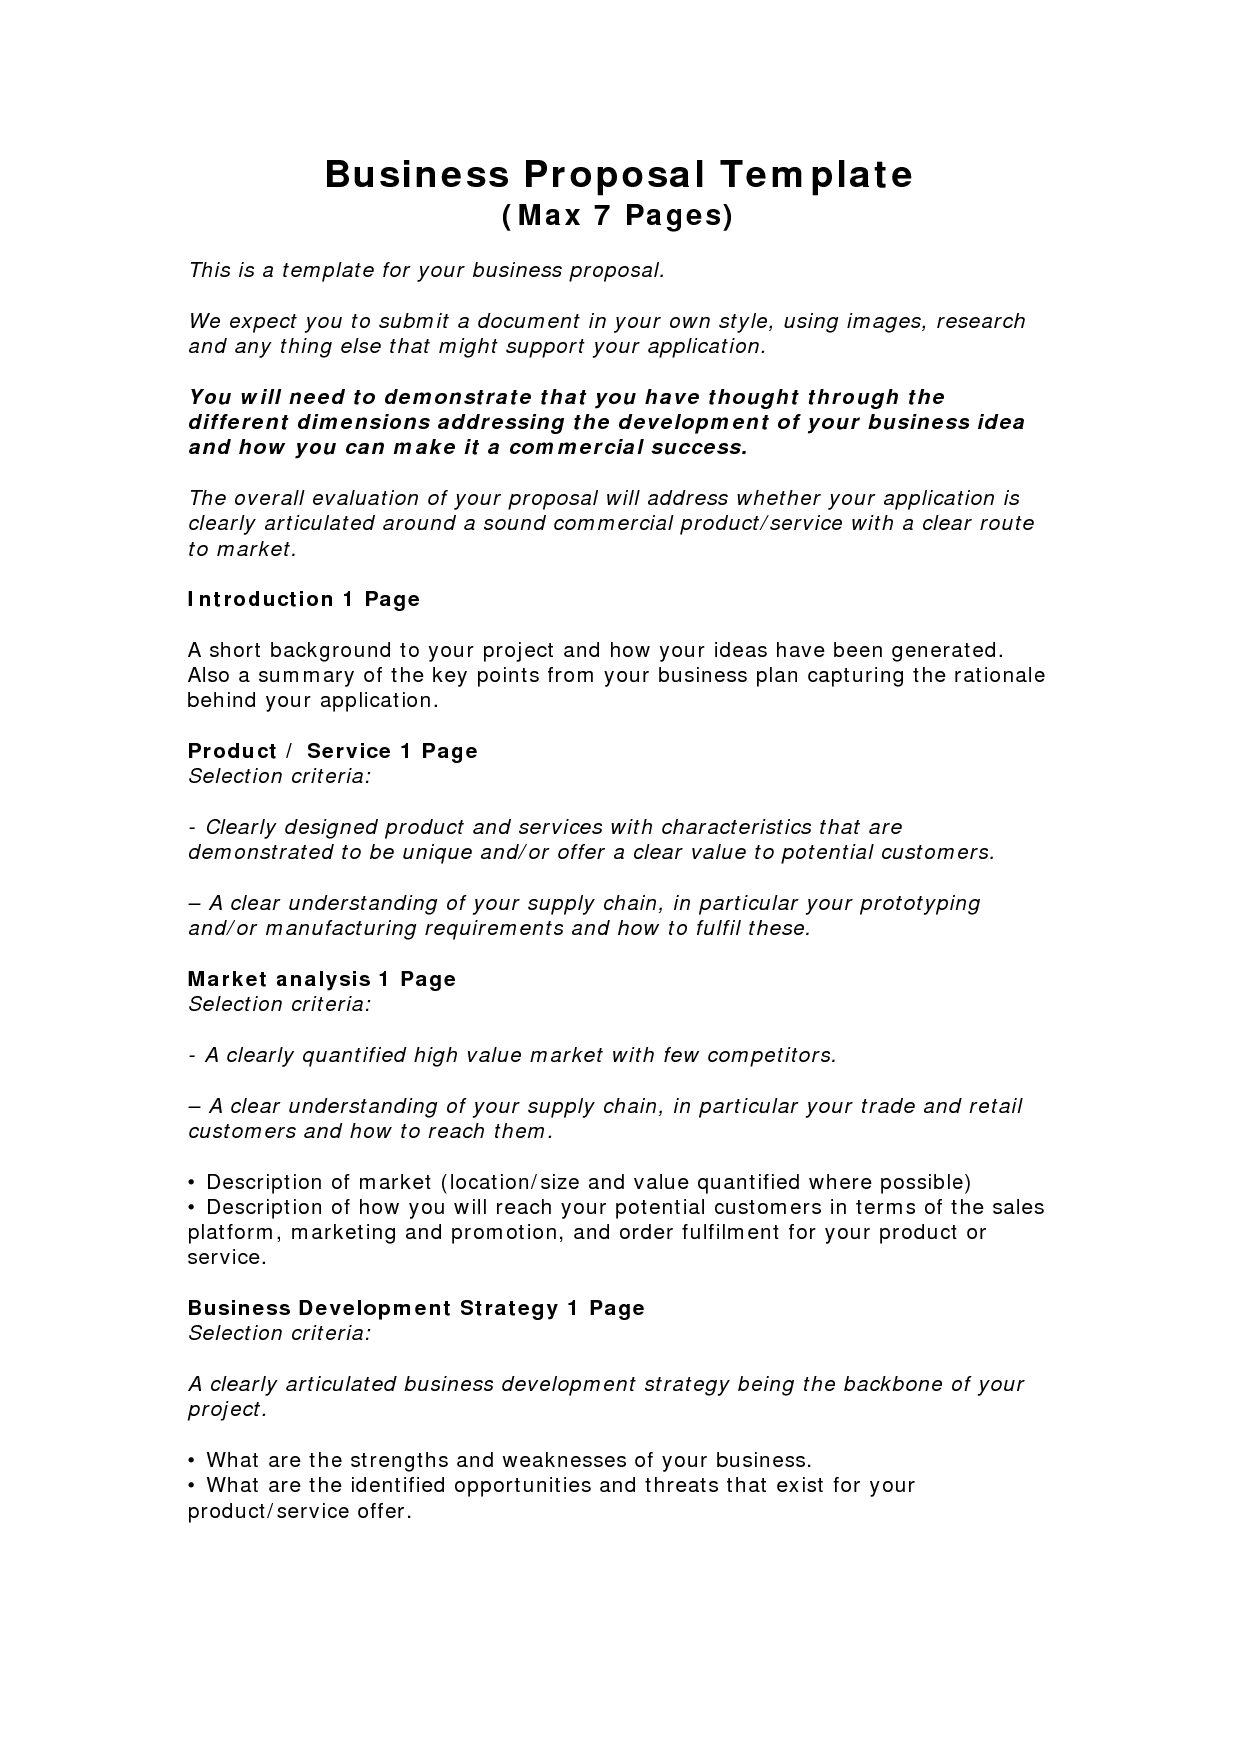 Business Proposal Templates Examples Template Max 7 Pages Pdf